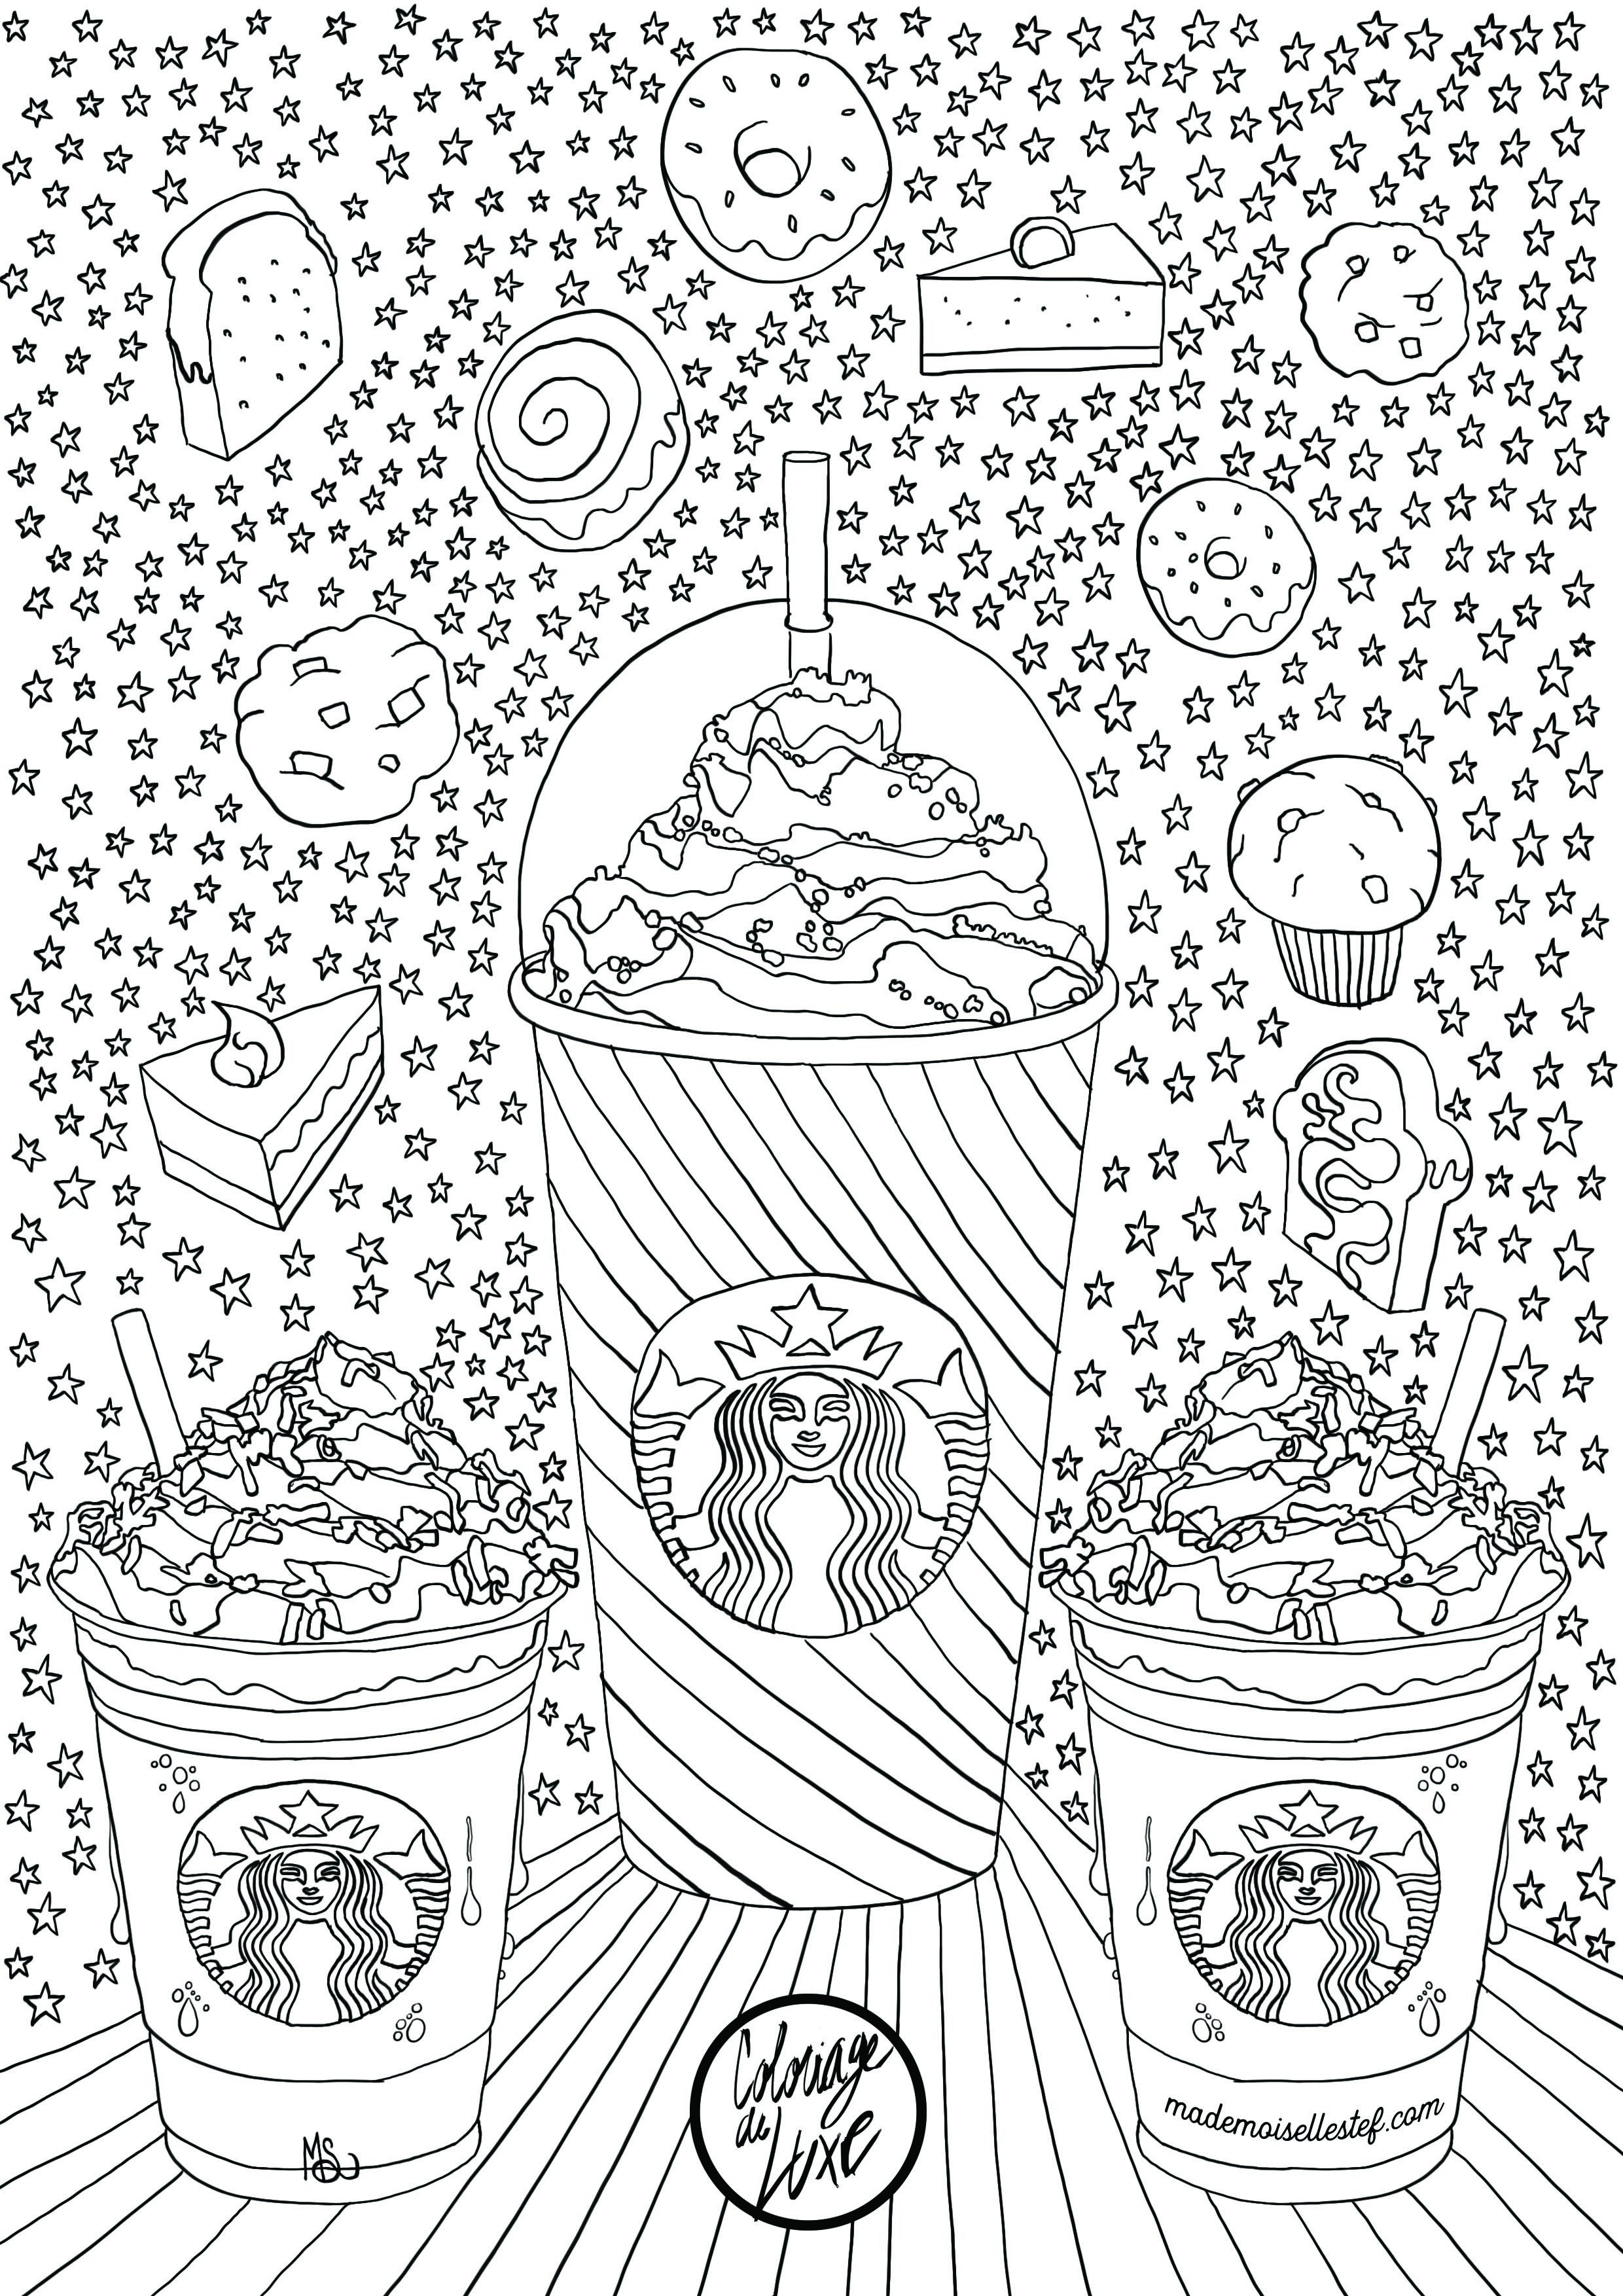 Starbucks Coloring Pages  Coloriage Starbucks I Mademoiselle Stef Blog Lifestyle